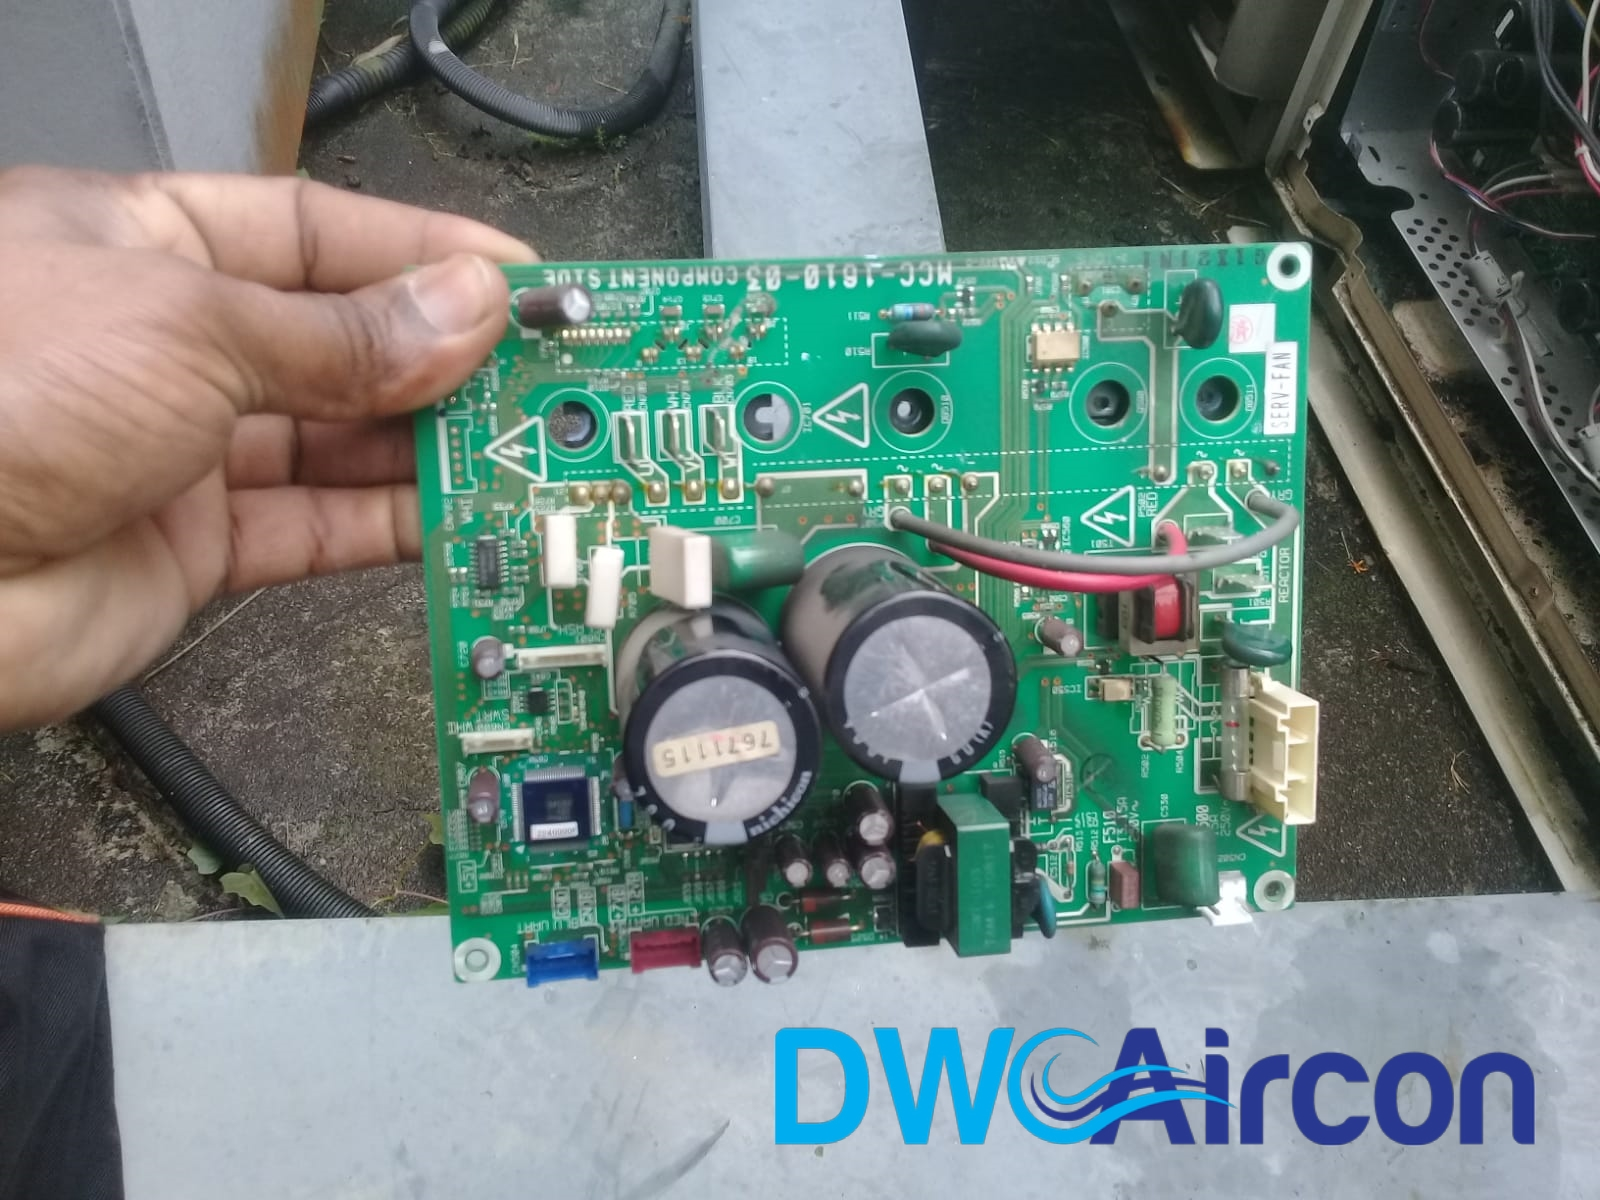 Dw Aircon Servicing Singapore Reliable Repair Service Central Air Conditioning Circuit Board Pcb Replacement Commercial Building Woodlands